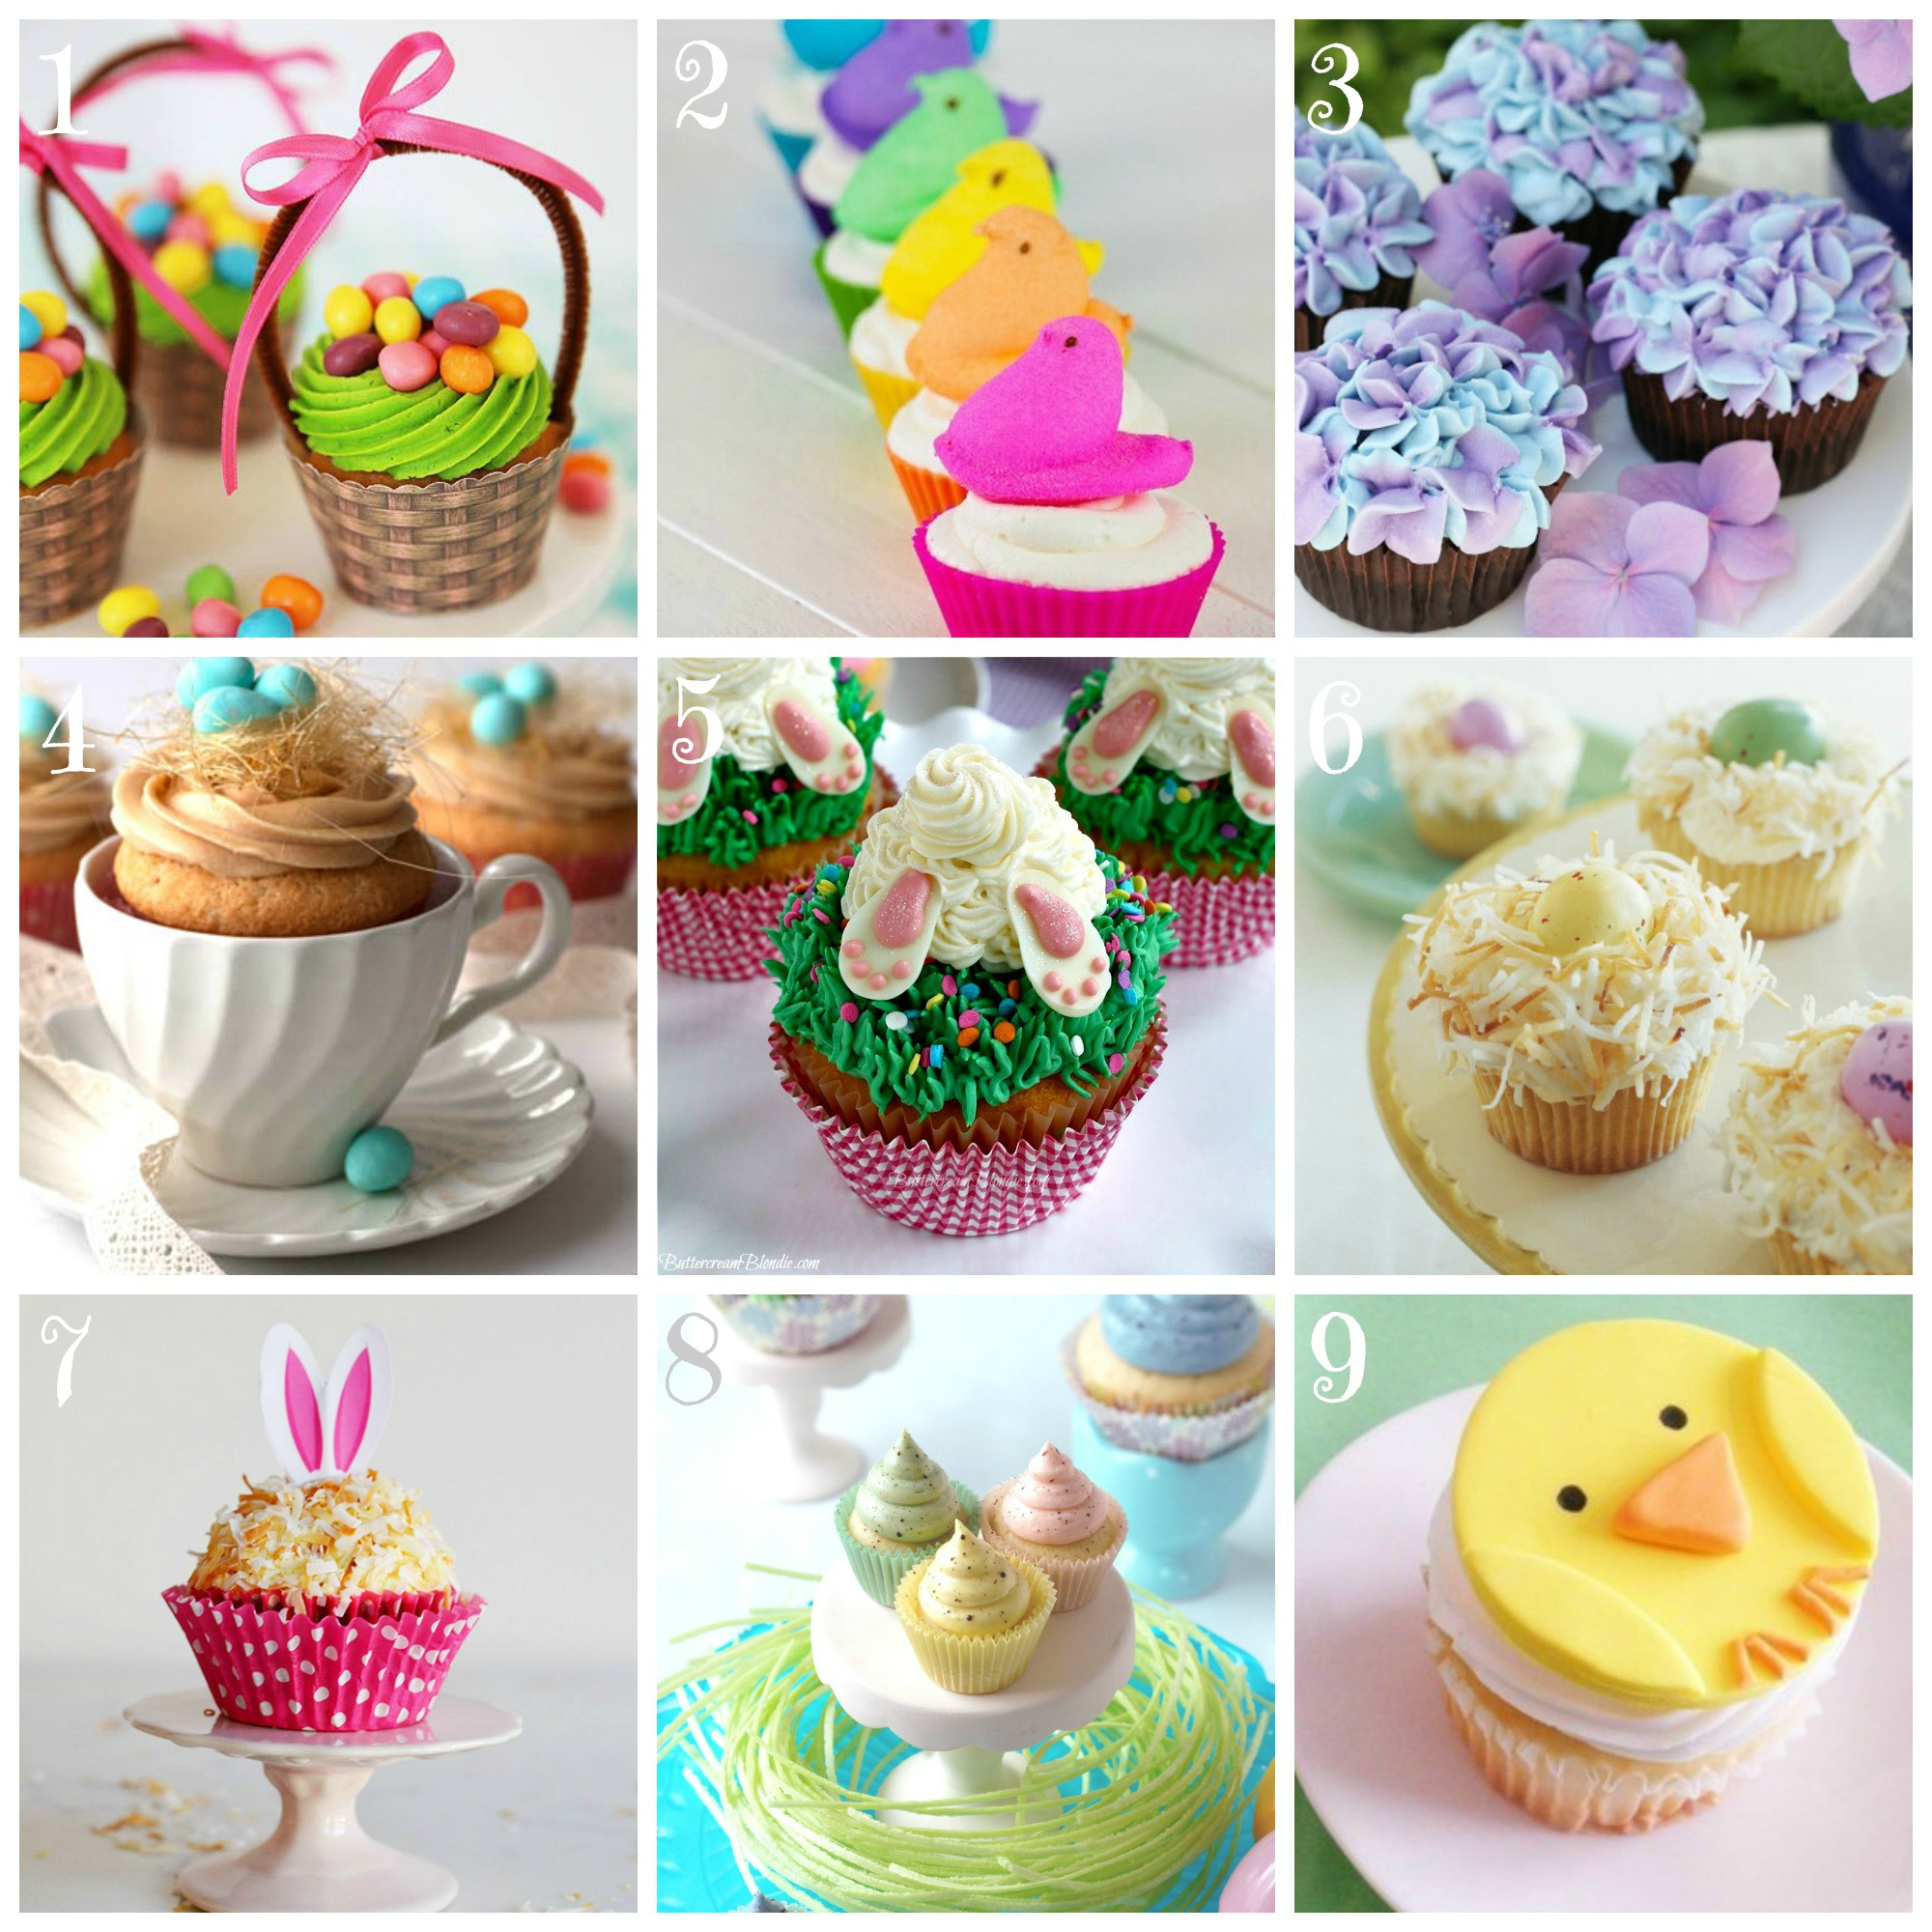 Cupcake Easter Desserts the Best Ideas for top 9 Easter Cupcake Recipes